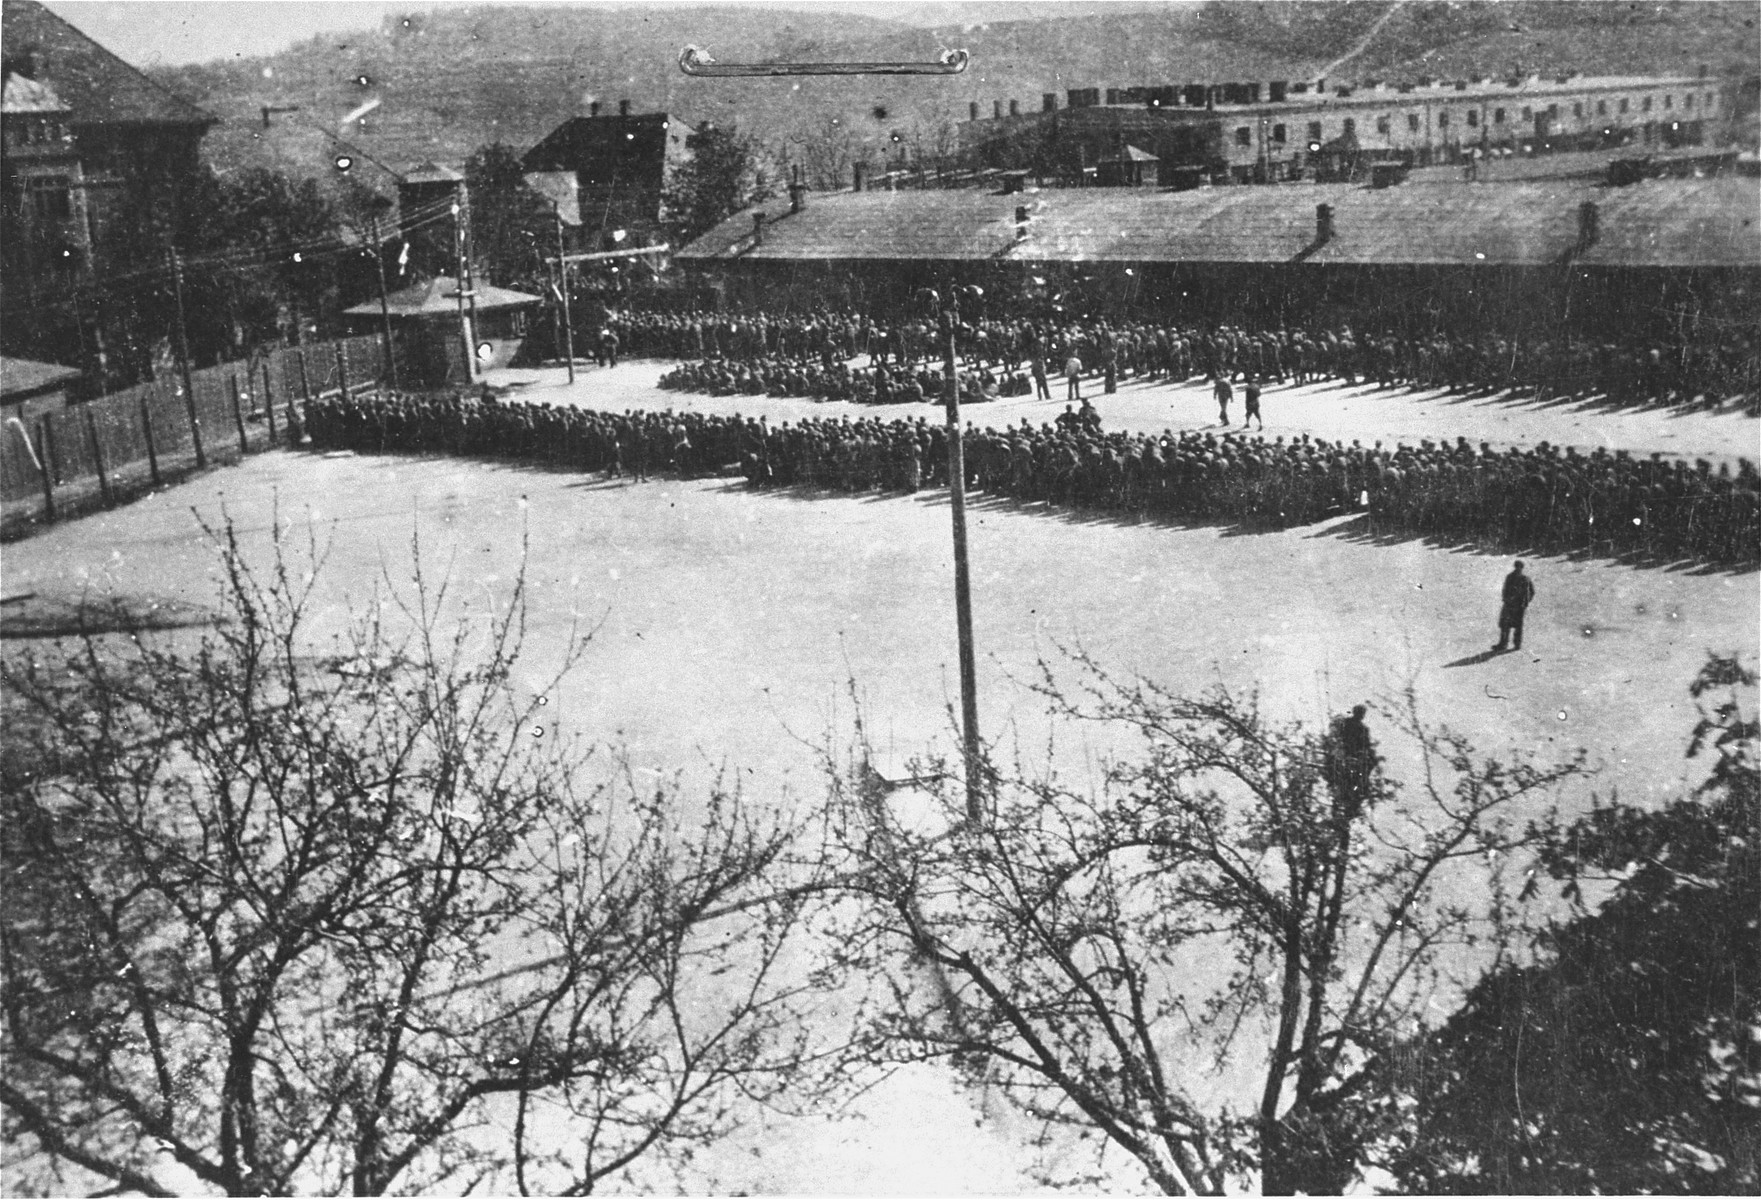 Newly arrived prisoners are assembled in the Appellplatz (roll call area) at the Melk concentration camp.